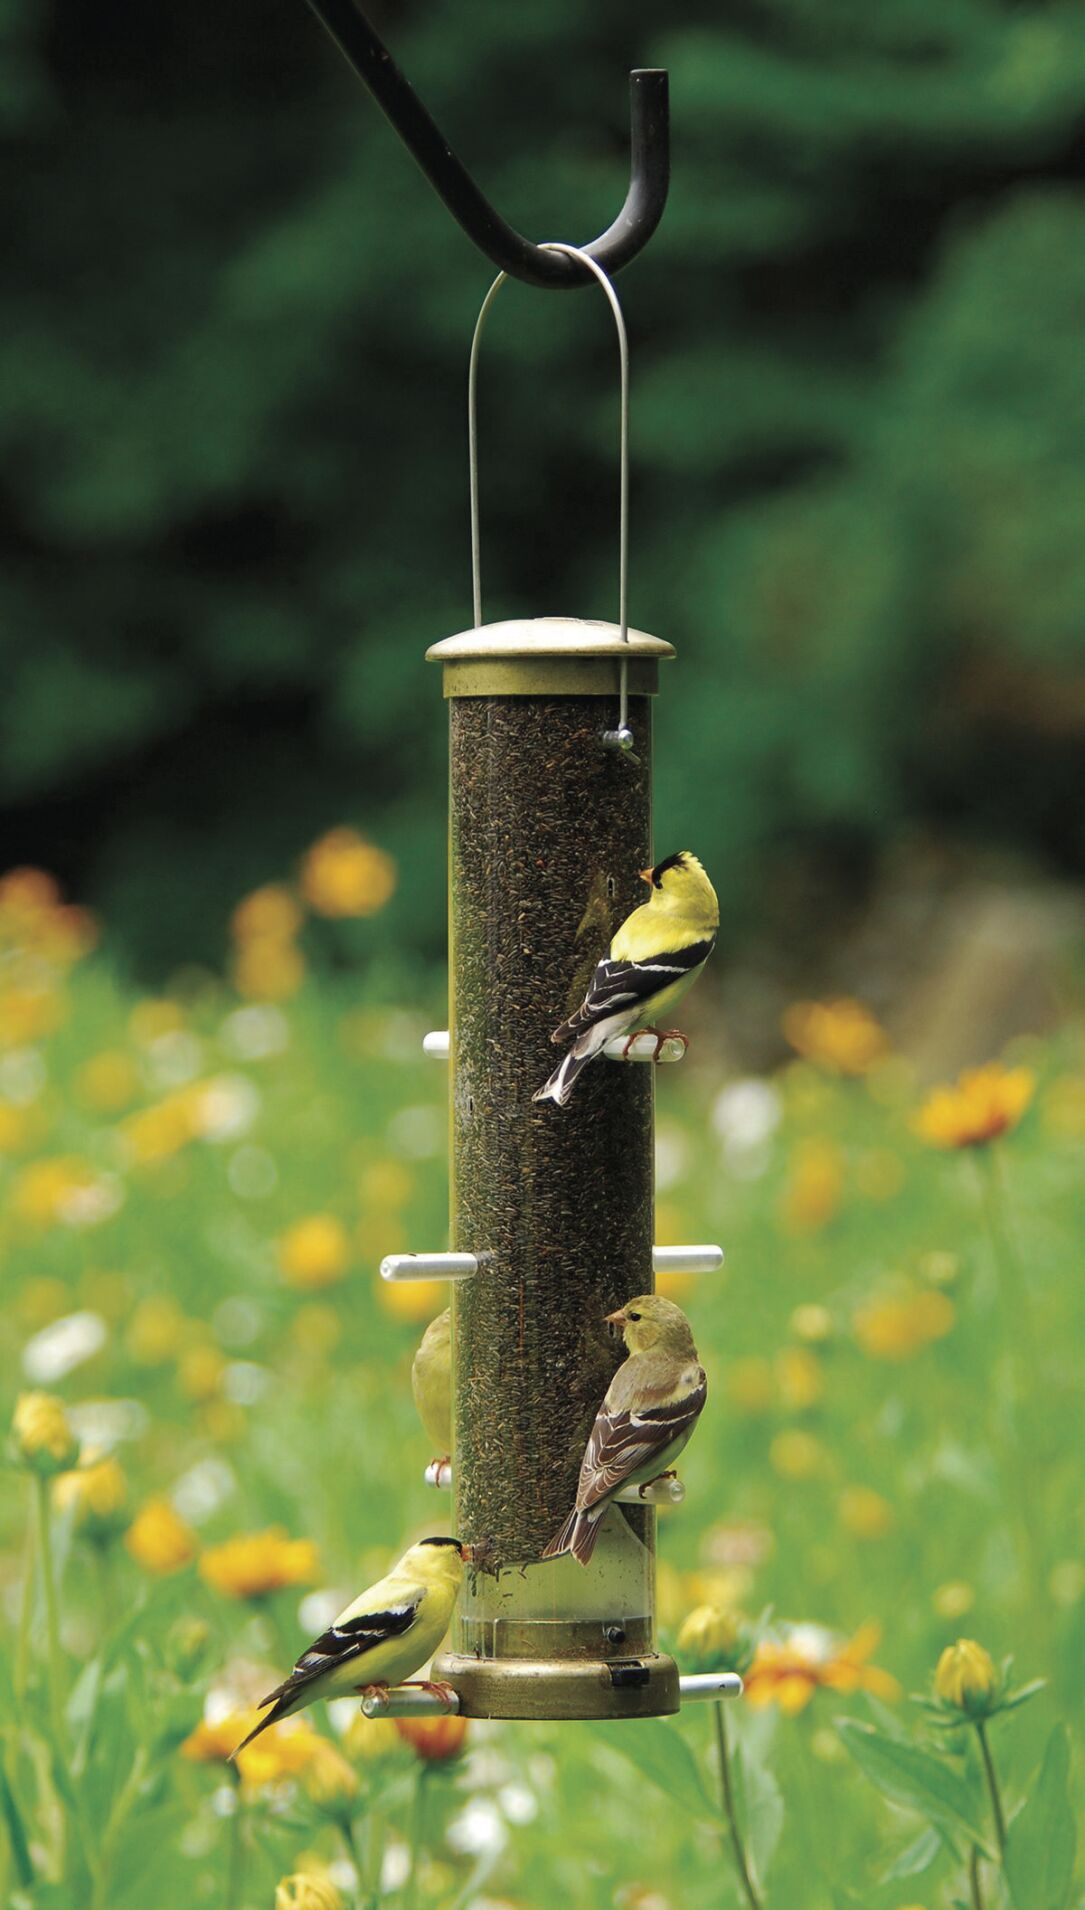 Traditional tube feeders are all-purpose options for bird feeding, especially for small birds that cling.